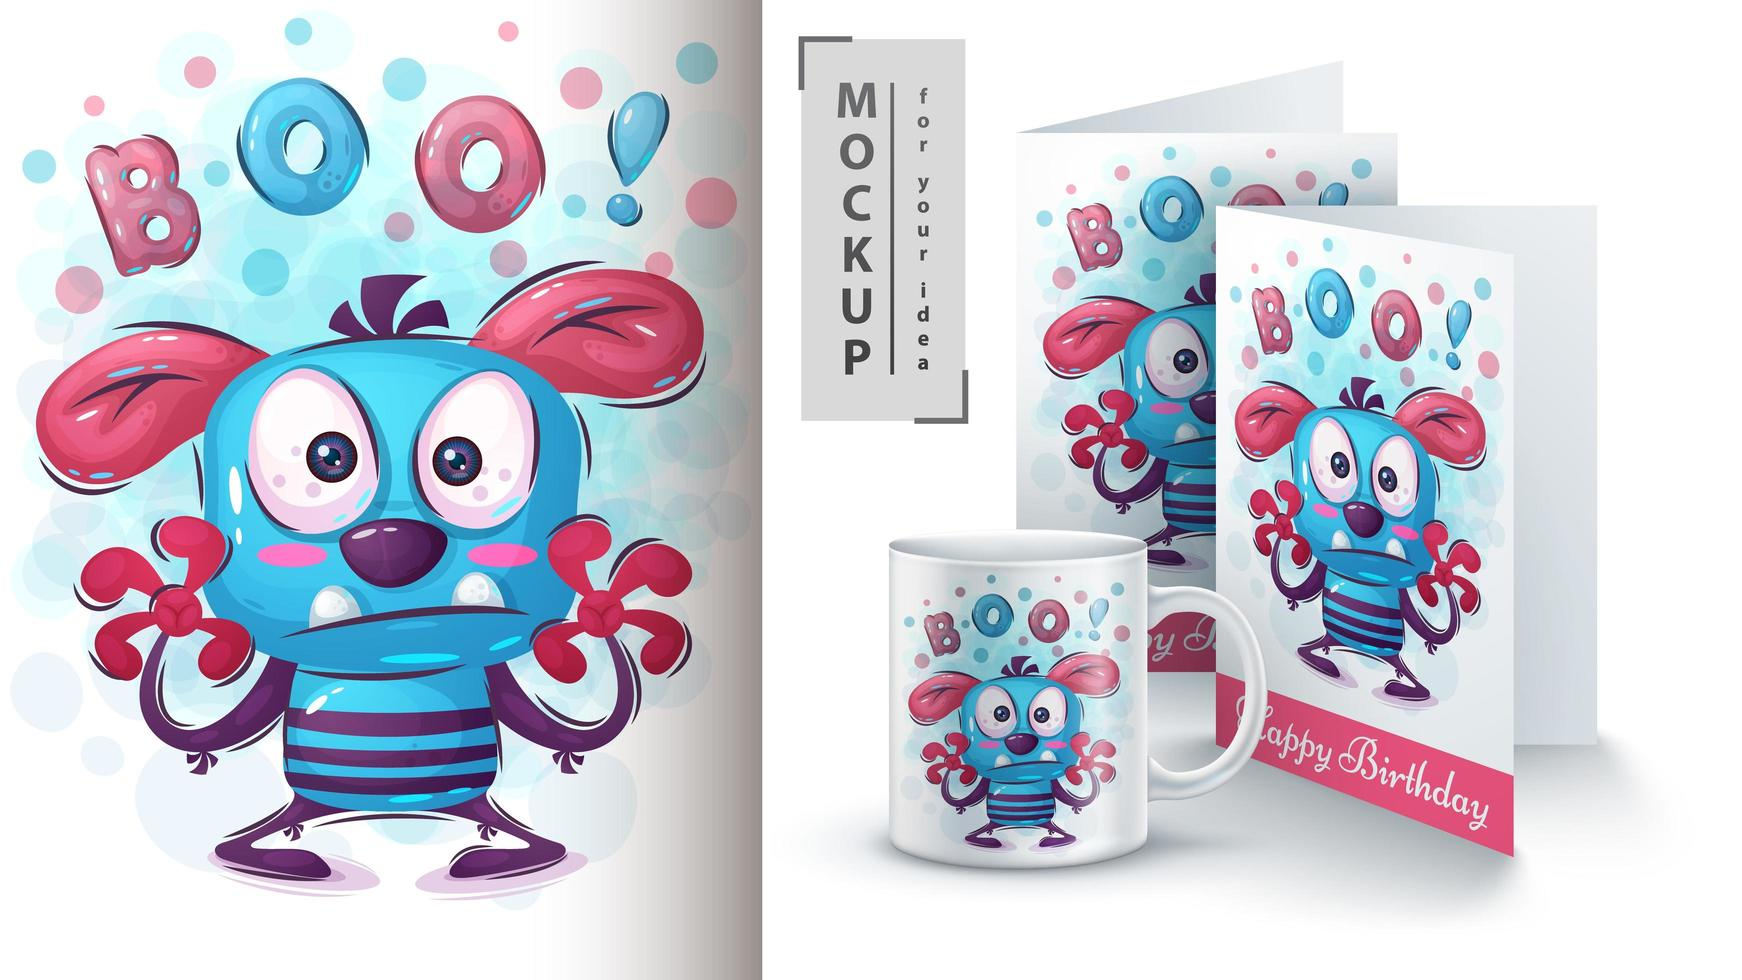 Boo Monster Poster and Merchandising vector